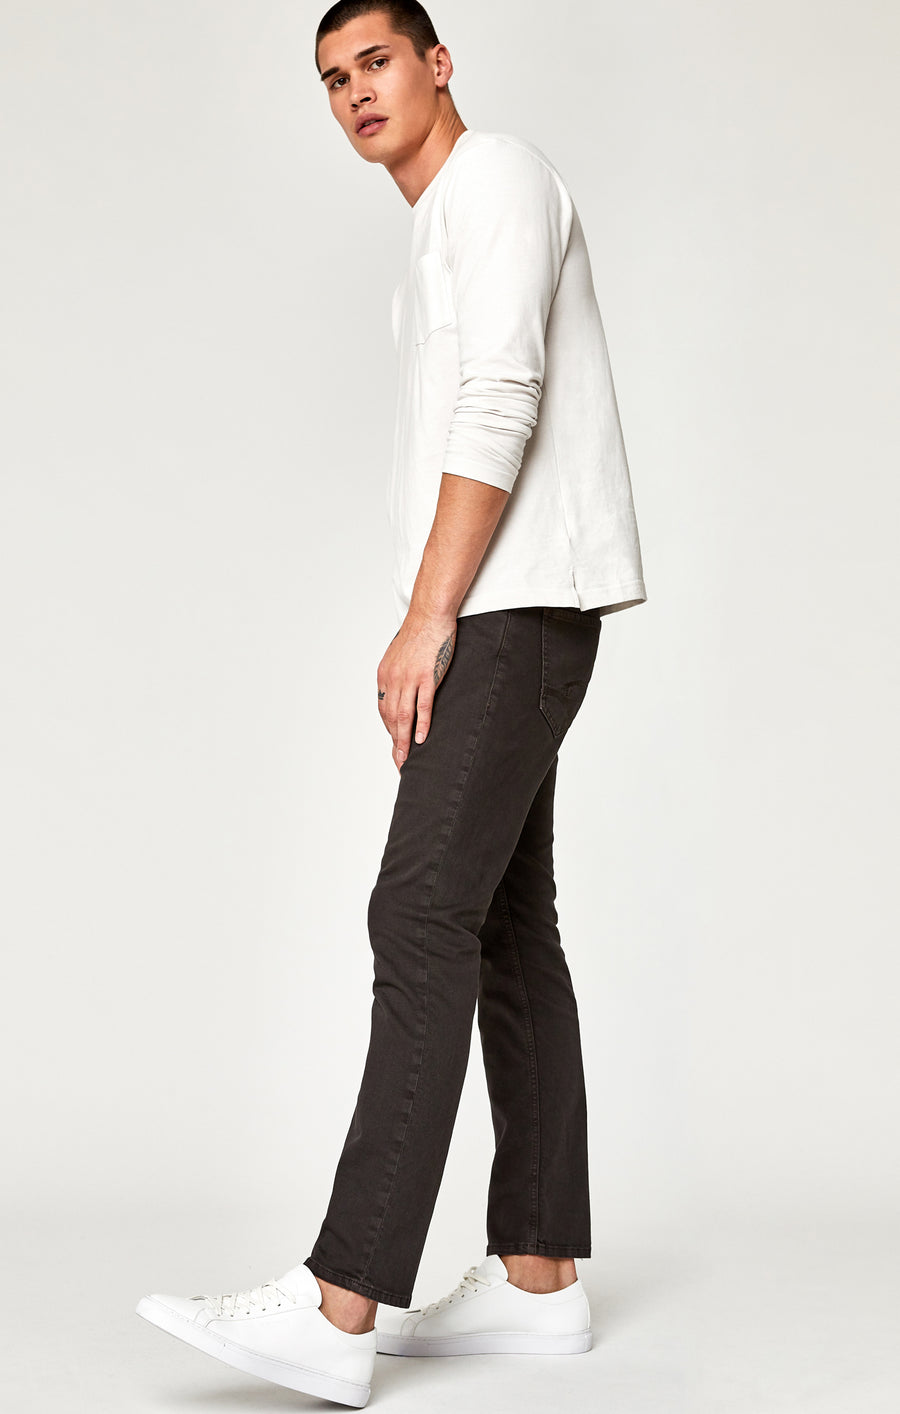 MARCUS SLIM STRAIGHT LEG JEANS IN DARK BROWN WASHED COMFORT - Mavi Jeans